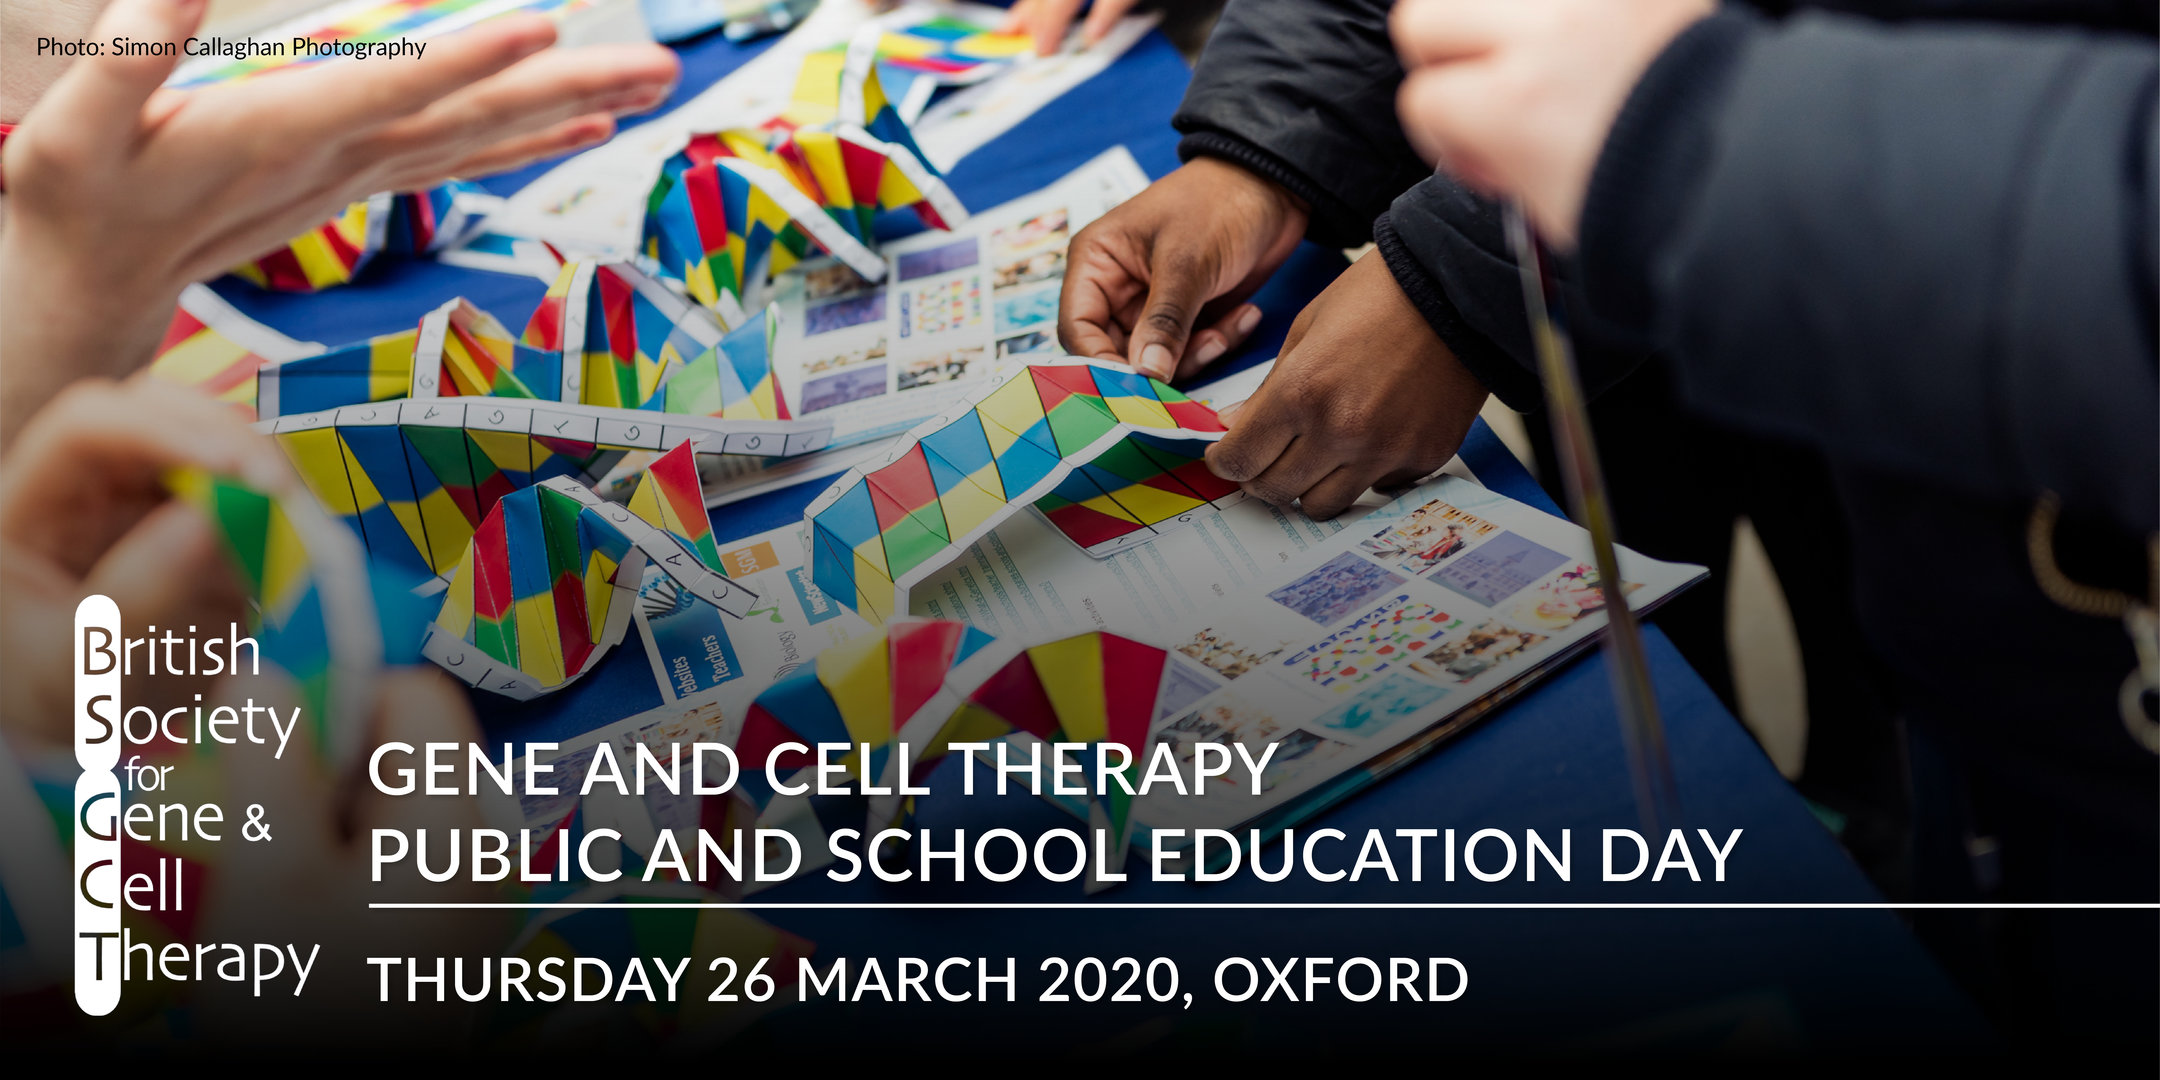 Gene and Cell Therapy Education Day